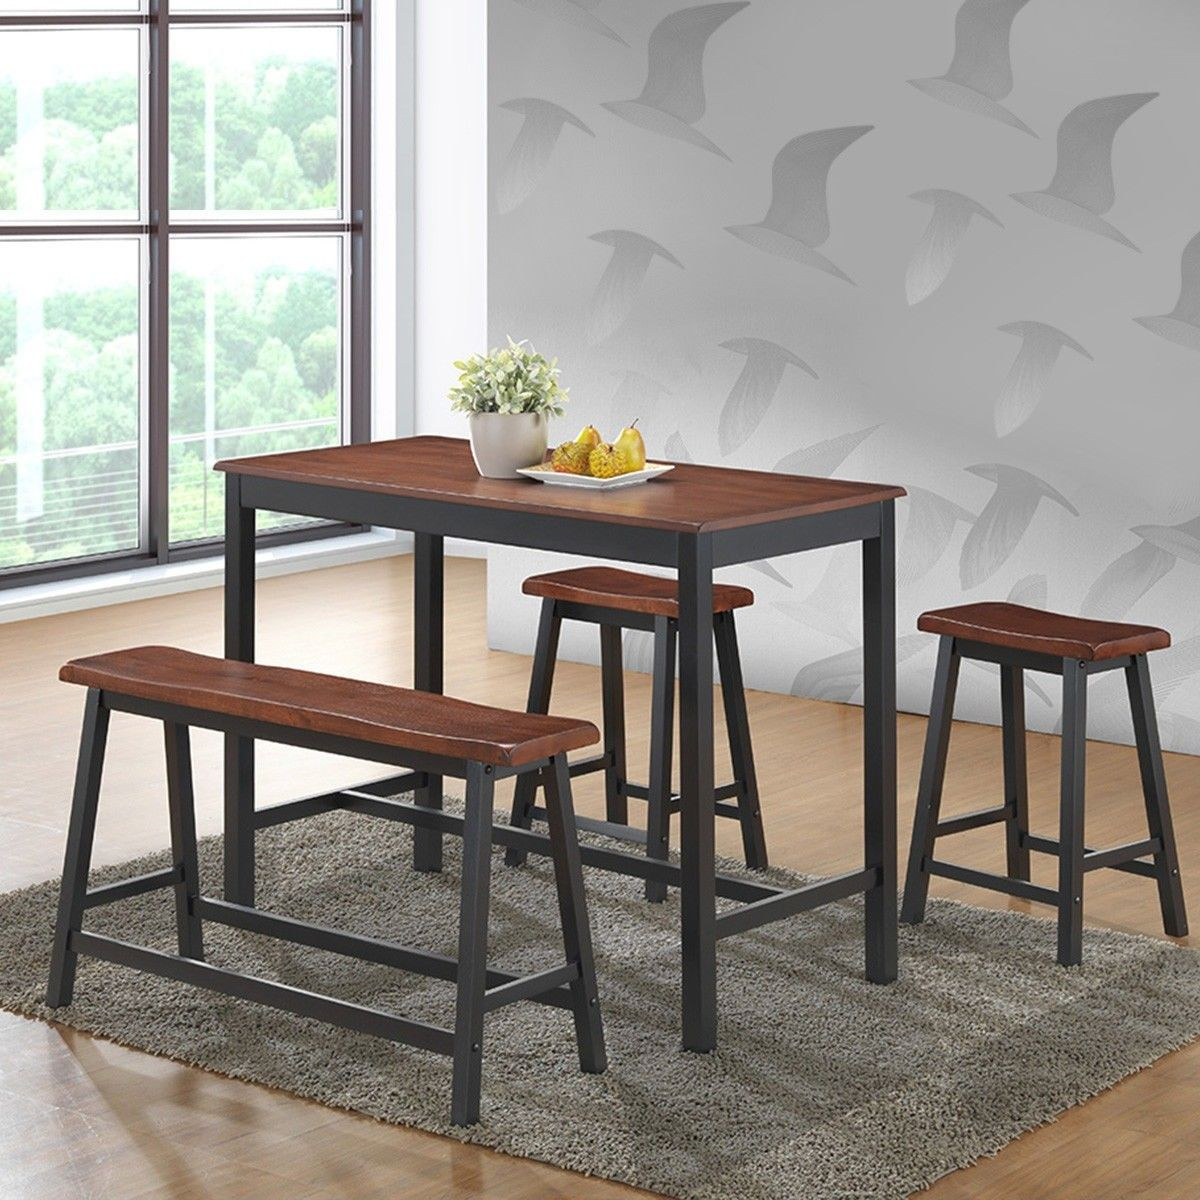 4 Pcs Solid Wood Counter Height Dining Table Set Counter Height